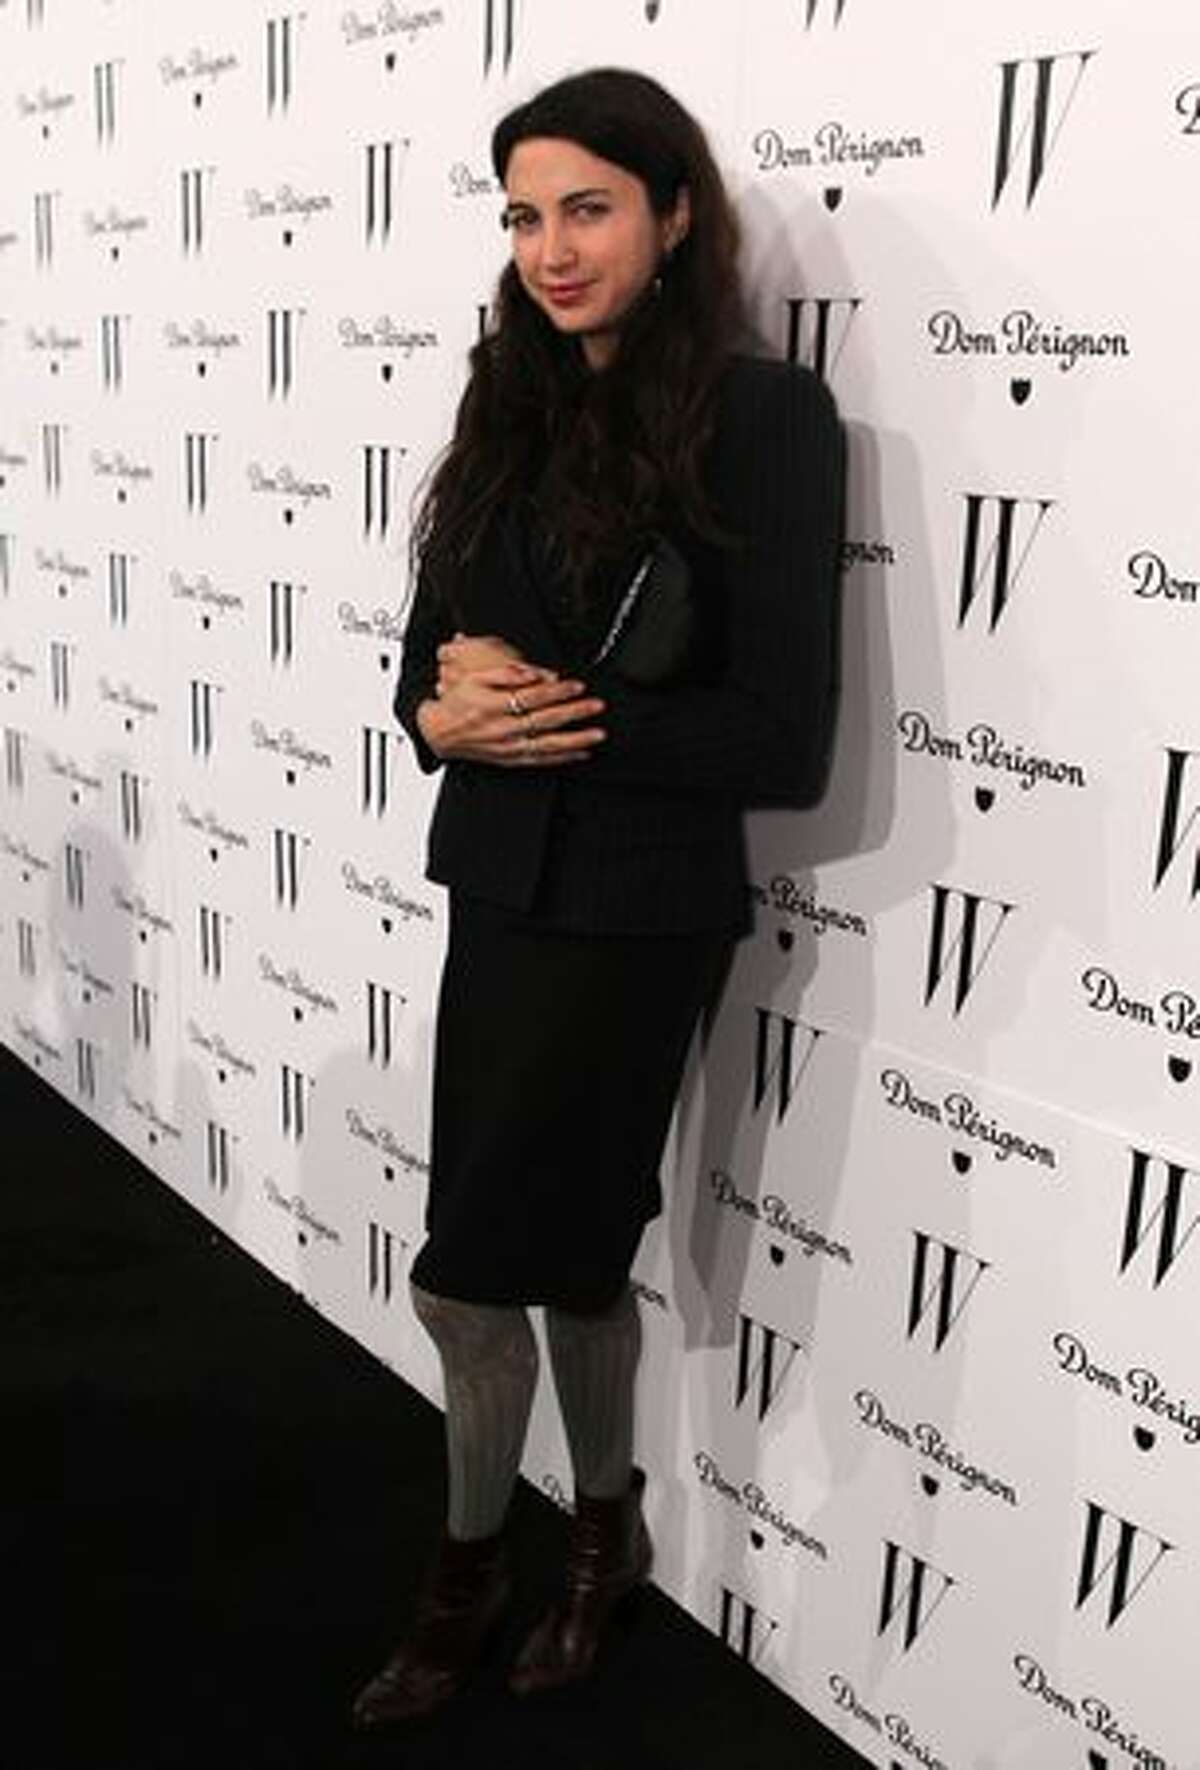 Actress Shiva Rose arrives at W Magazine's Celebration of The Best Performances Issue and The Golden Globes held at at Chateau Marmont in Los Angeles on Friday, Jan. 14, 2011.